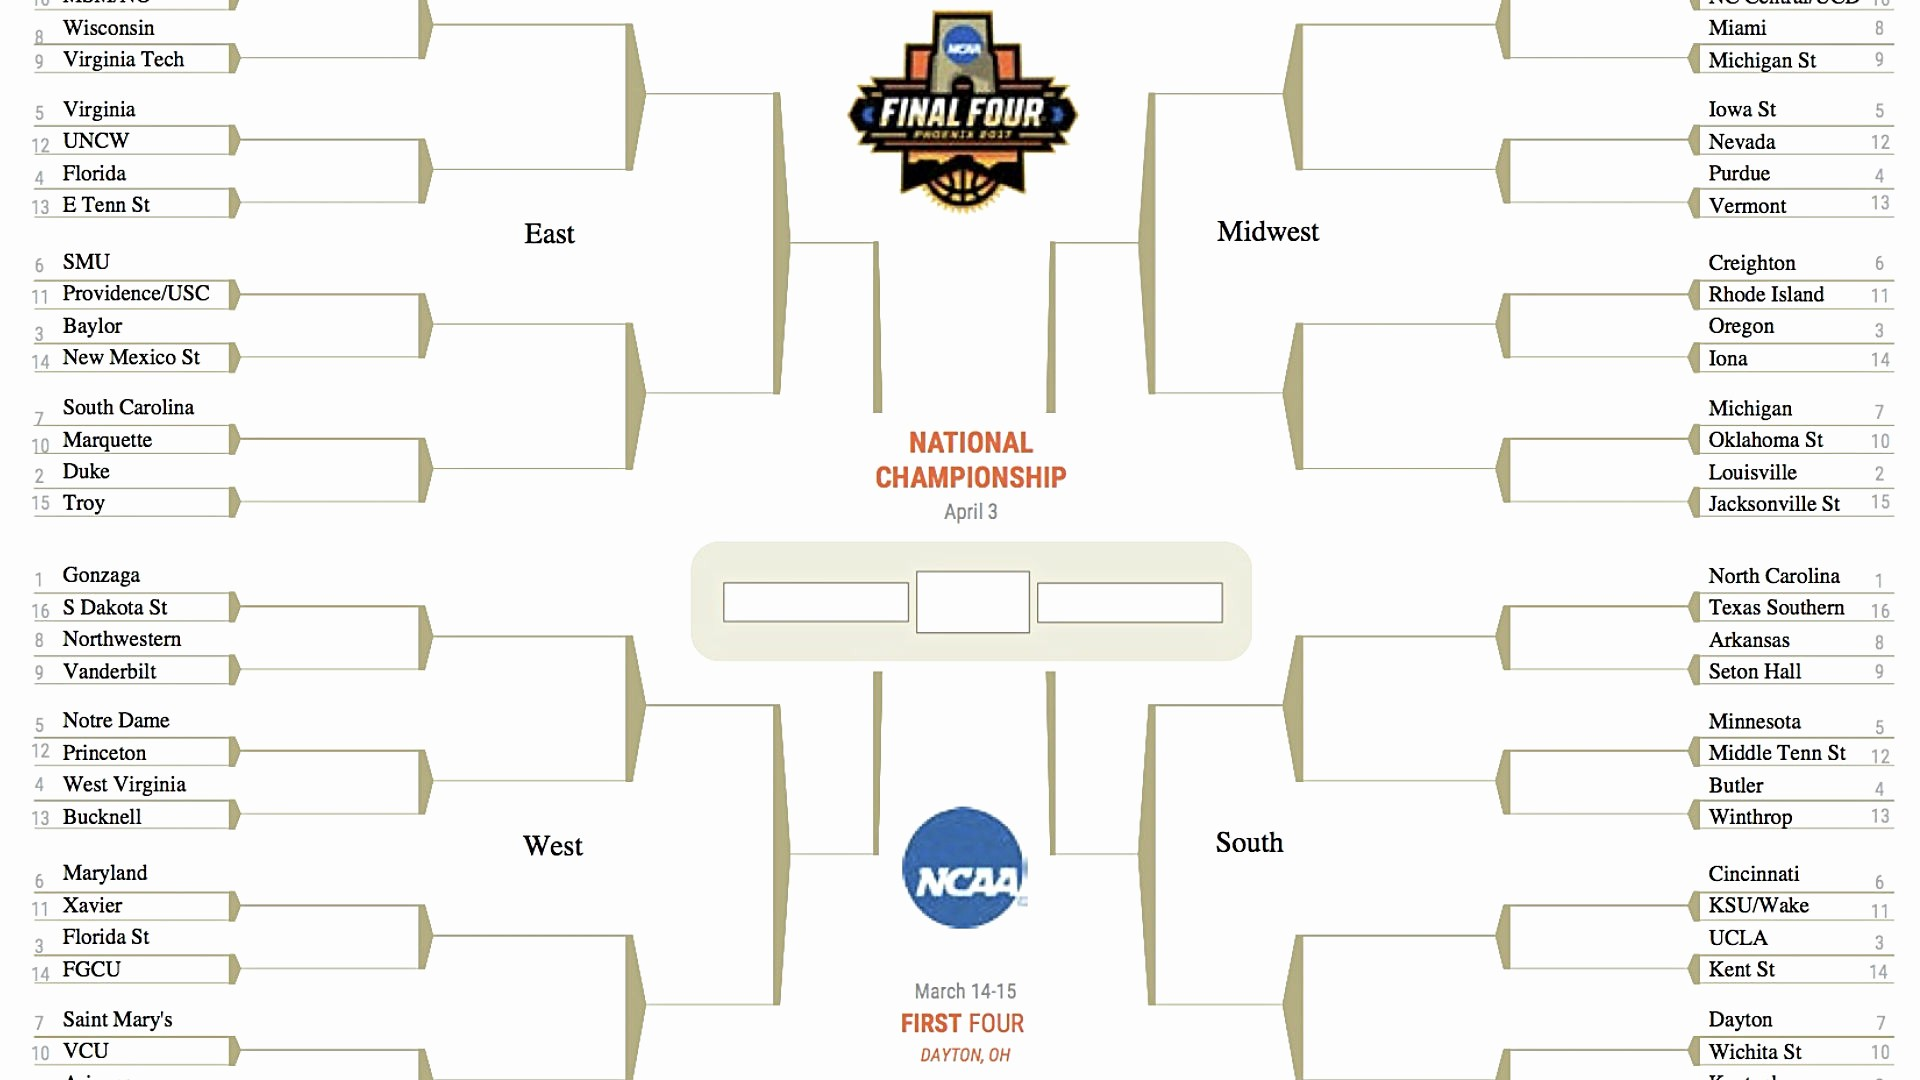 March Madness Bracket Word Document Luxury List Of Synonyms and Antonyms Of the Word Bracket